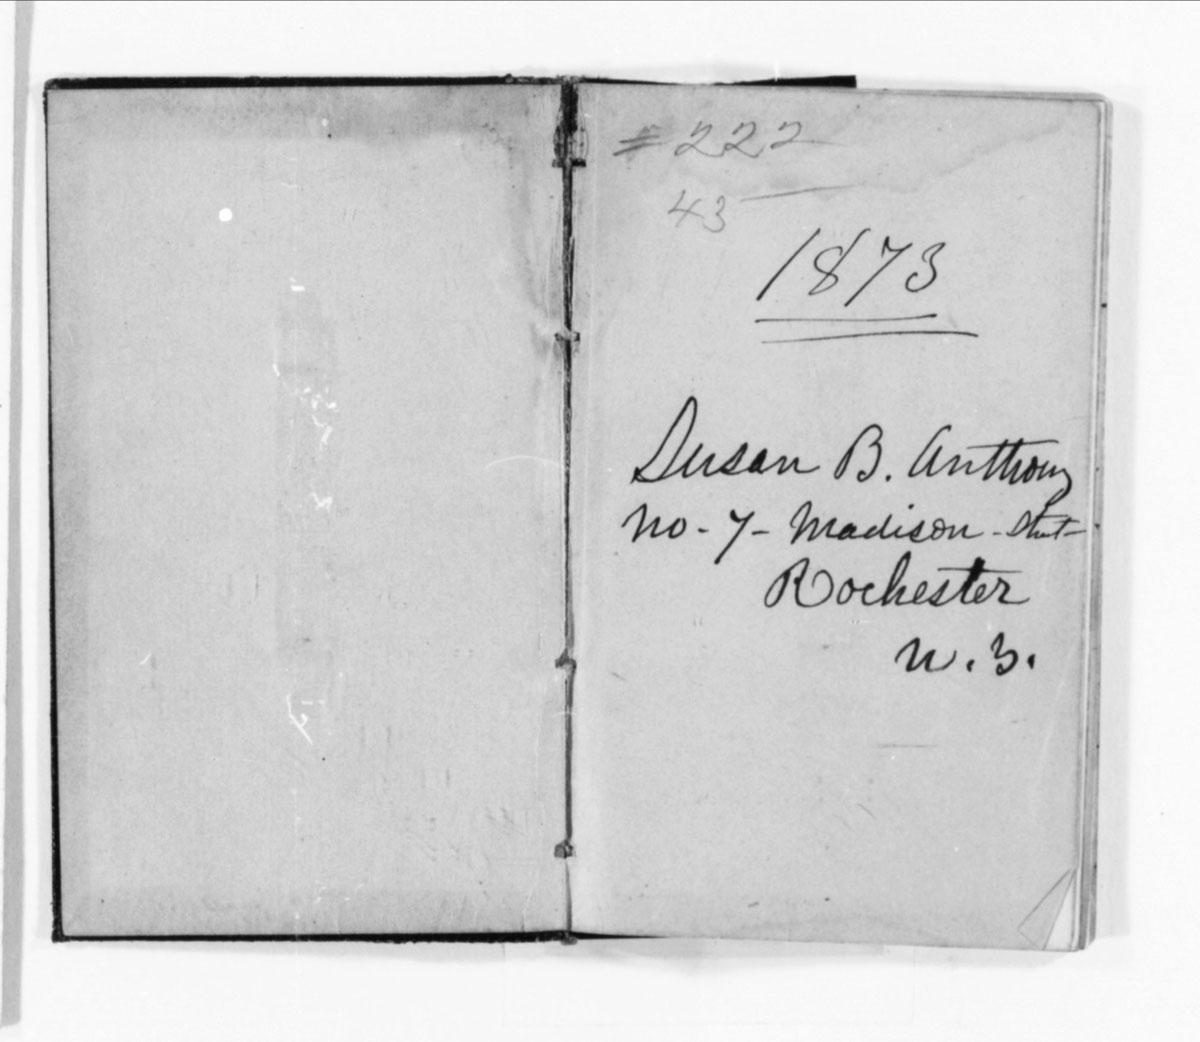 From Susan B. Anthony's papers, the first page of her 1873 diary.